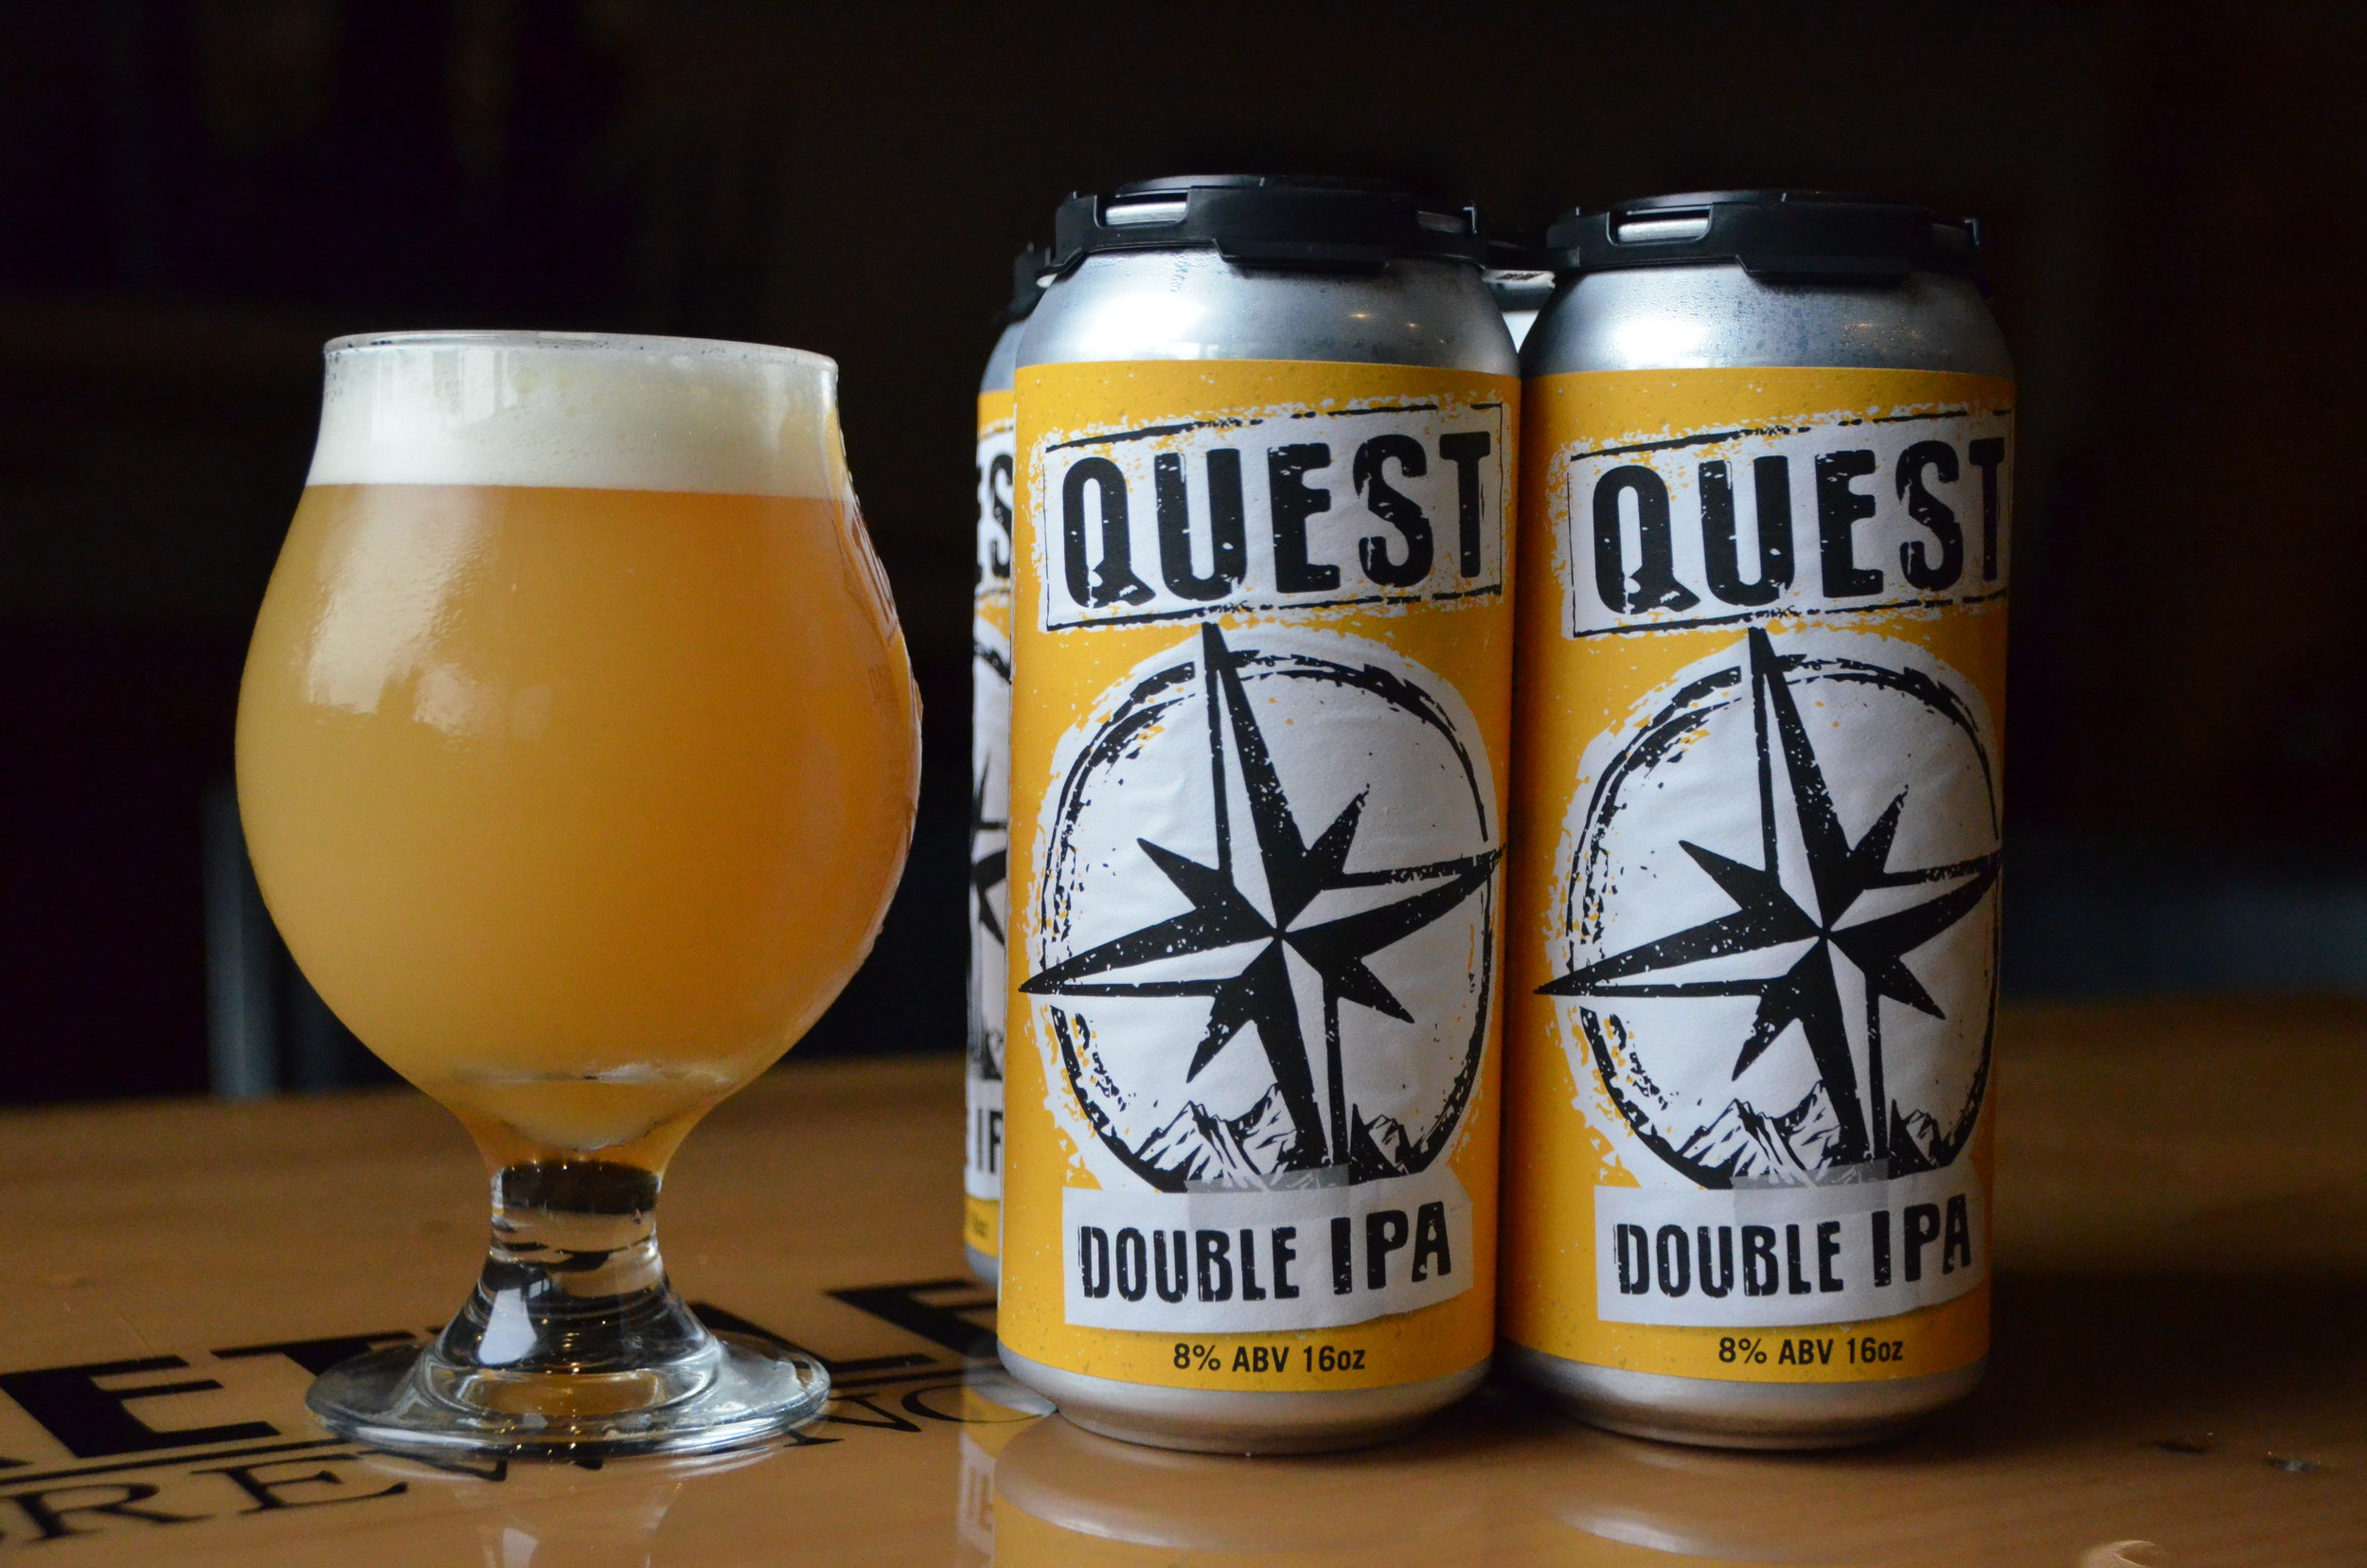 Quest, DIPA, 8% ABV - What is your Quest? Ours was to brew a juicy, dank, approachable double IPA, bursting with tropical fruit, mango, peach, pineapple. A combo of 4 different hops make up this complex double IPA